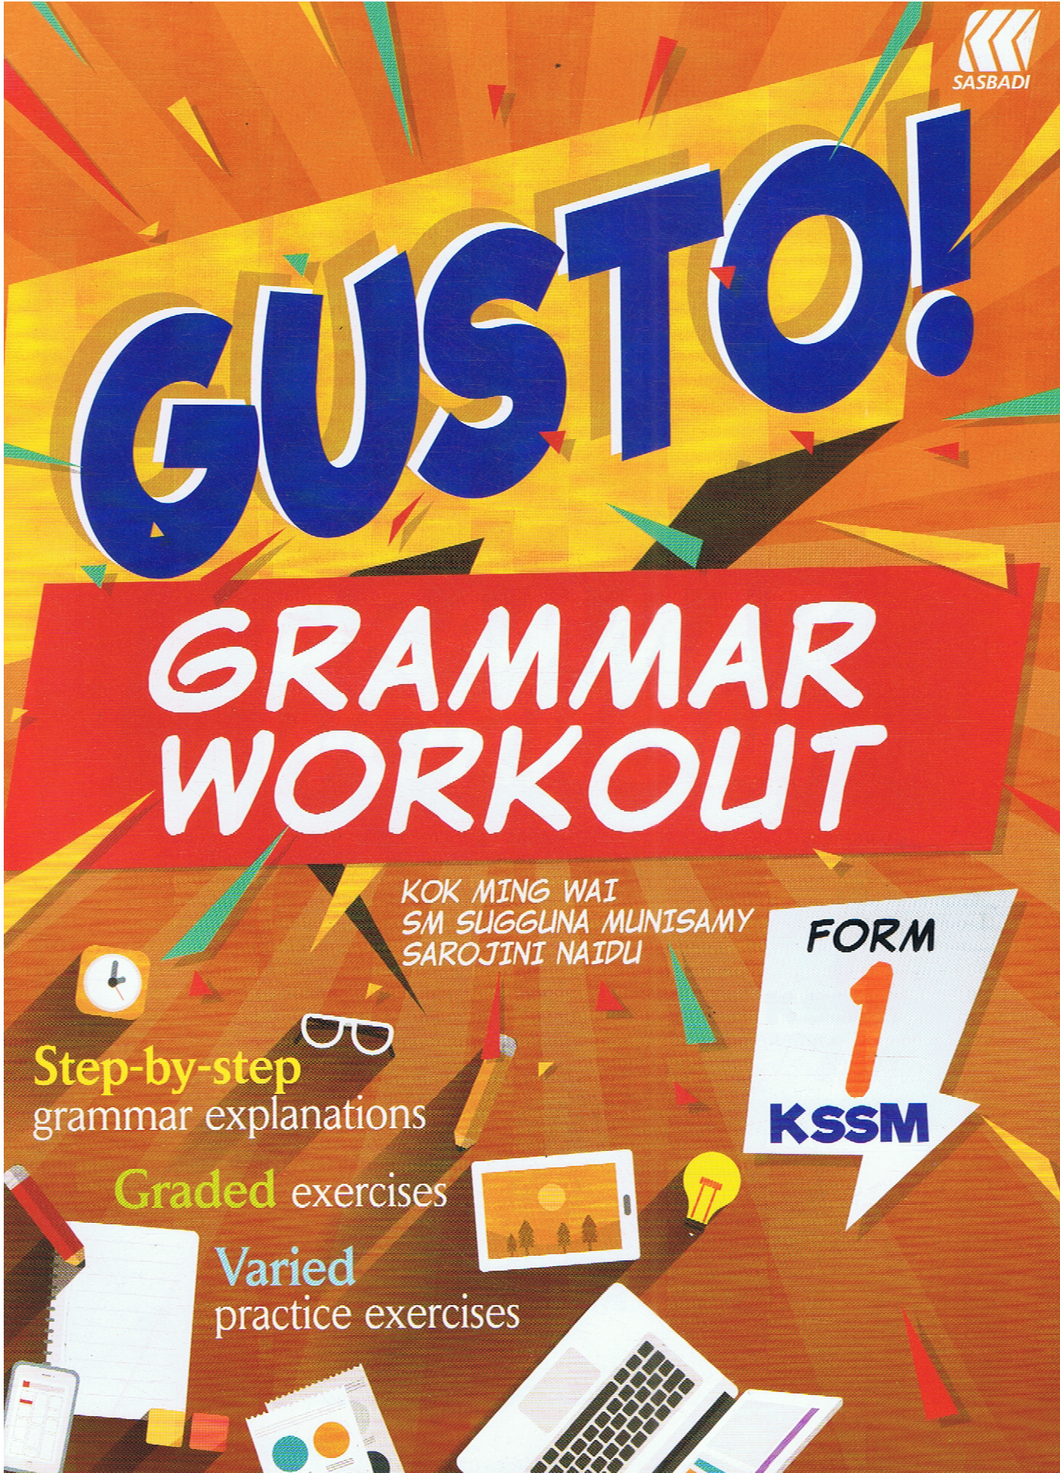 Gusto! Grammar Workout Form 1